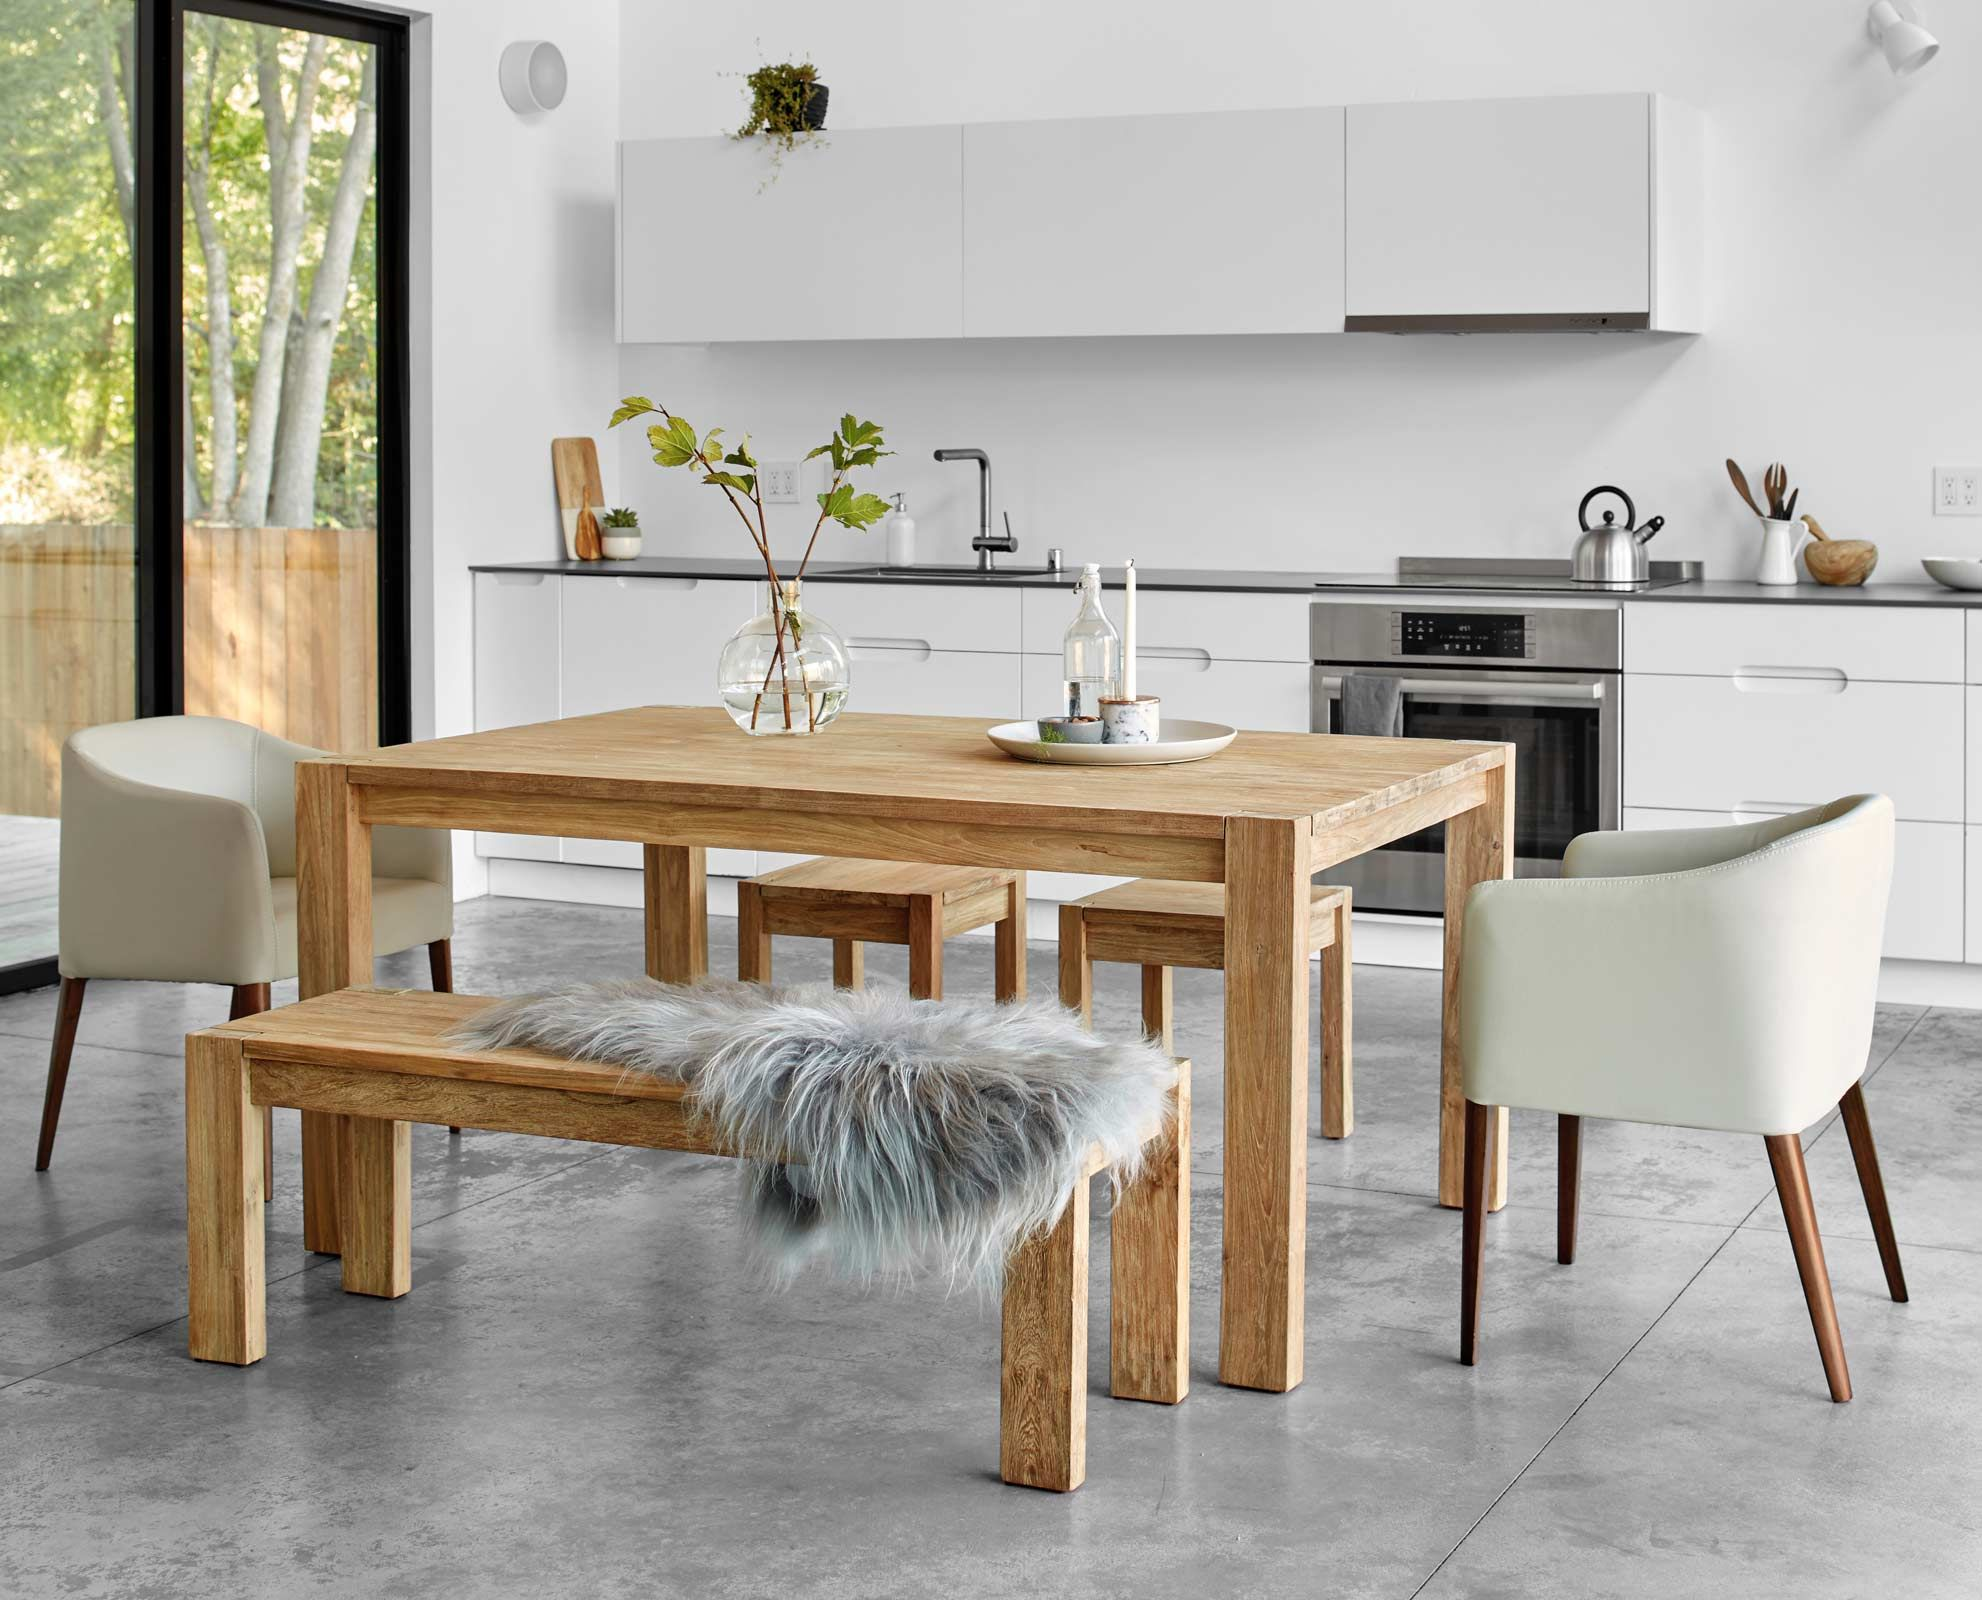 The Sammer 65 Dining Table From Scandinavian Designs Simple In Design And Crafted From Solid Re Contemporary Home Decor Contemporary House Dining Room Design